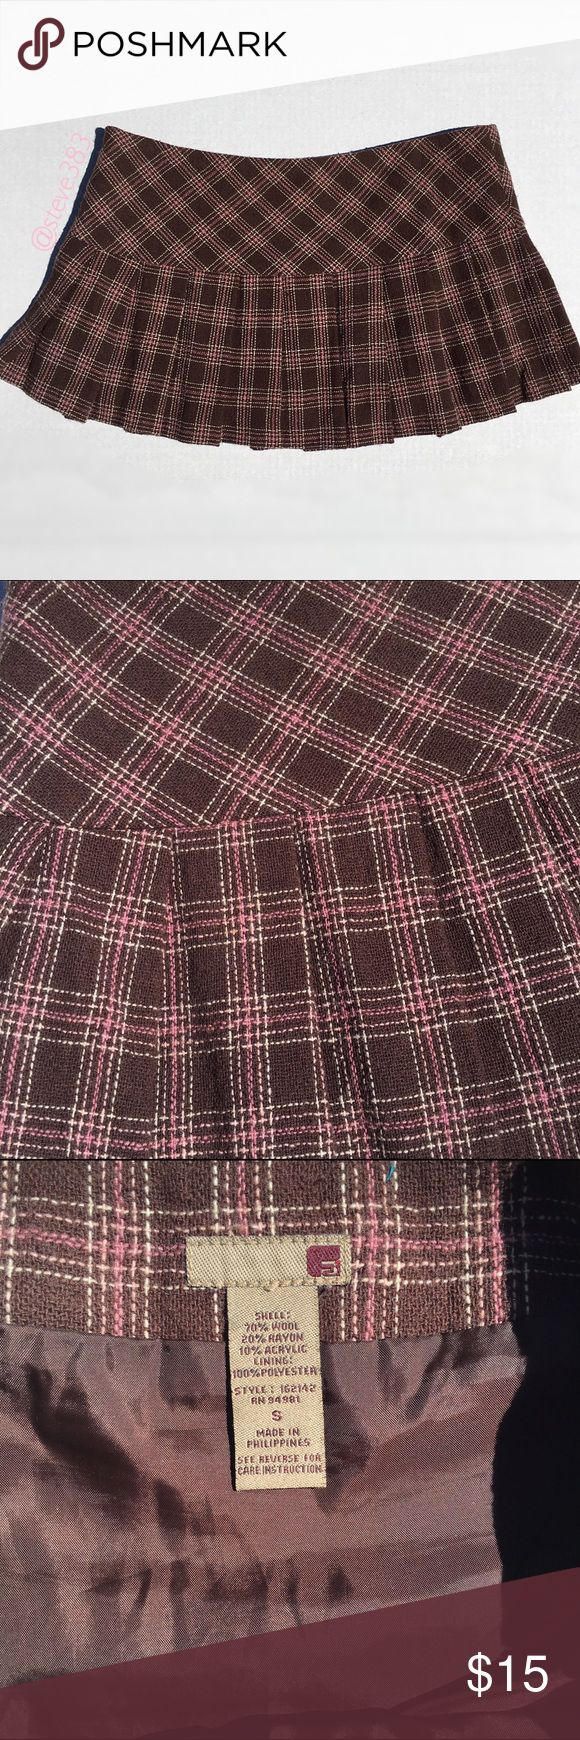 F21 ✏️ pleated plaid skirt This pleated plaid mini skirt allows you to look sweet and sexy.   The skirt features a plaid of pink and cream, a hidden side zipper, and satiny lining. The lining does have a couple water mark spots.   Pair this number with a button down blouse and heels for a sassy secretary/ school girl look or with cable knit leg warmers and a chunky sweater for a sweet cozy look. Forever 21 Skirts Mini